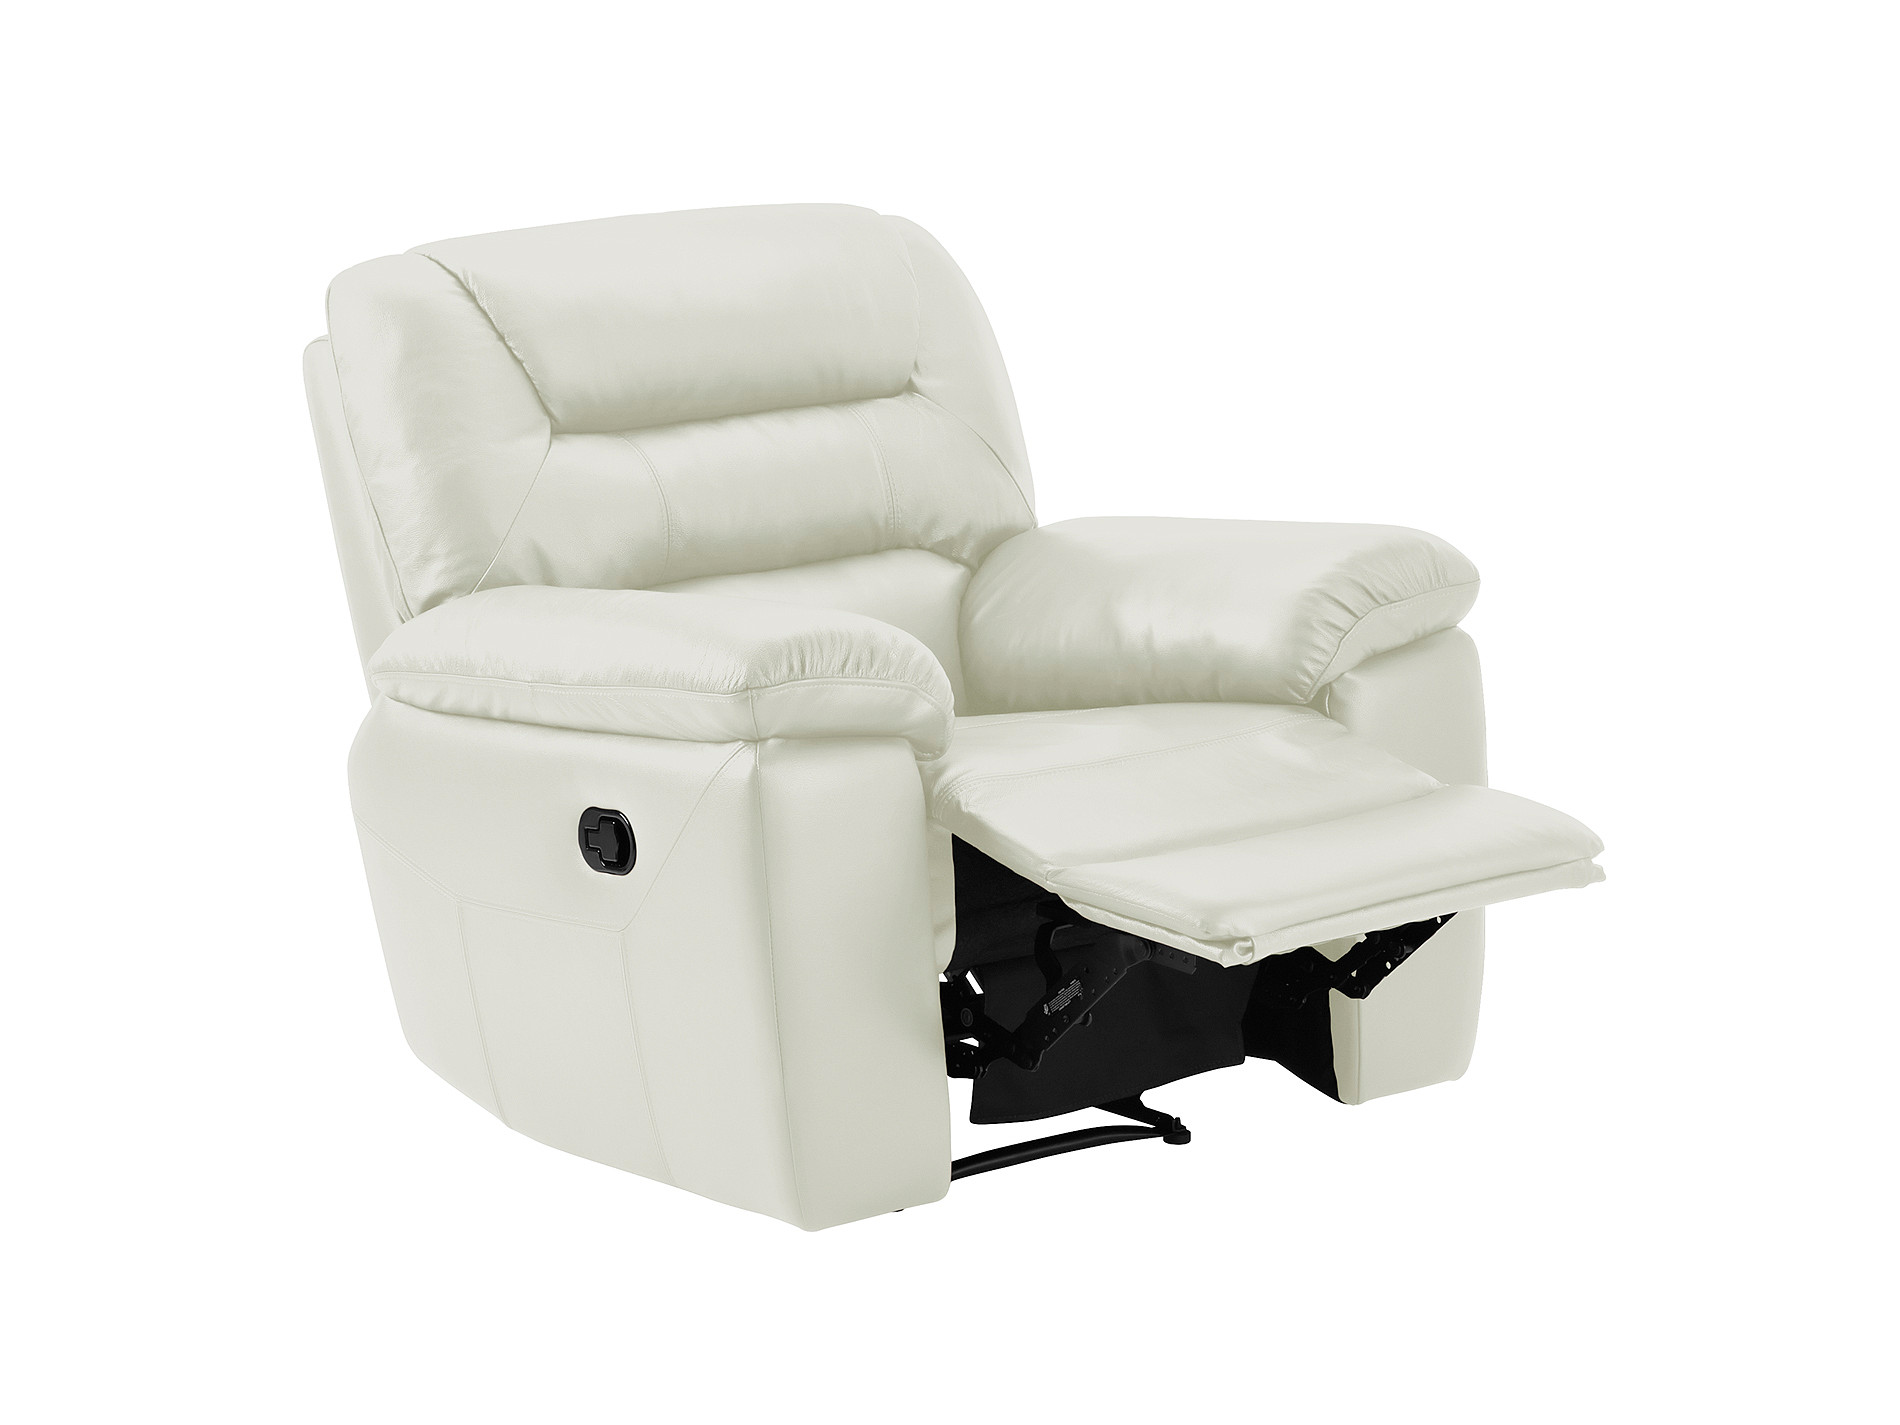 grey leather recliner chair uk lazy boy reclining chairs devon armchair with manual light